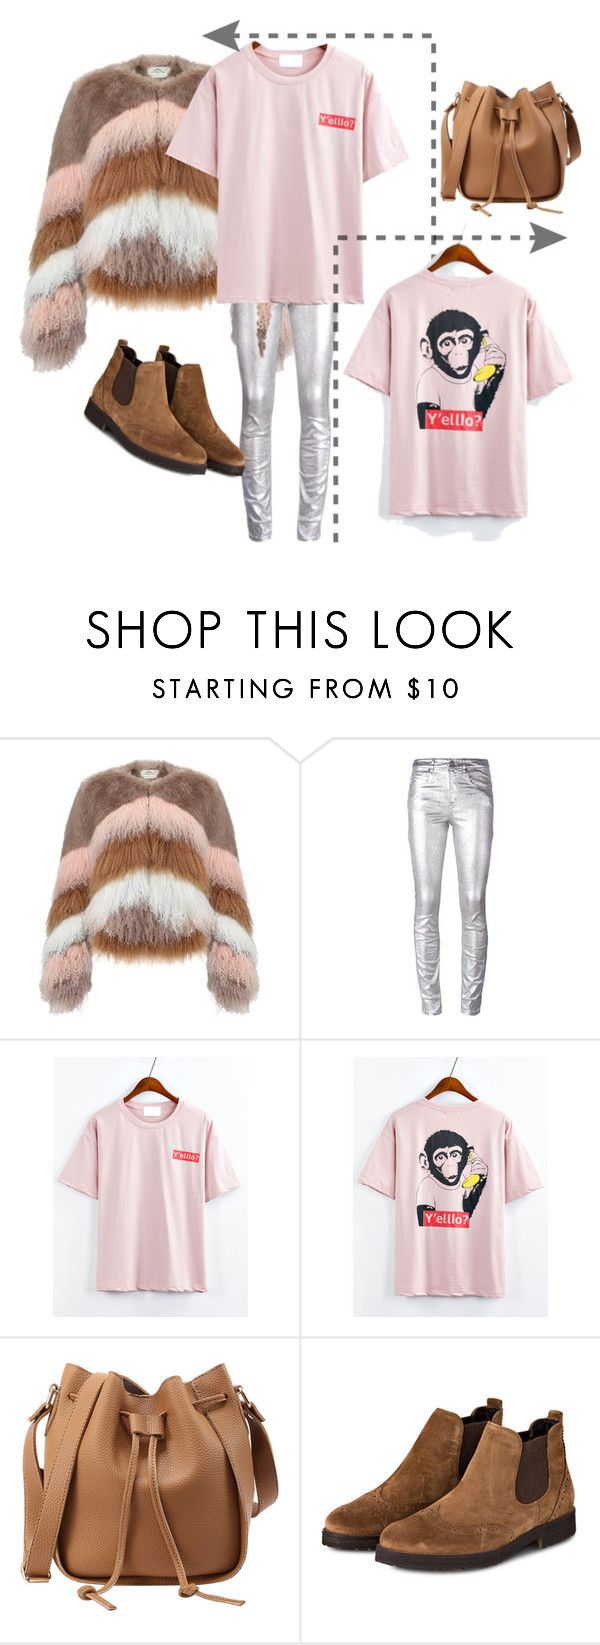 """""""Romwe.com contest! - Win this pink graphic print t-shirt!"""" by blueviolette on Polyvore featuring moda, Urbancode e Étoile Isabel Marant"""